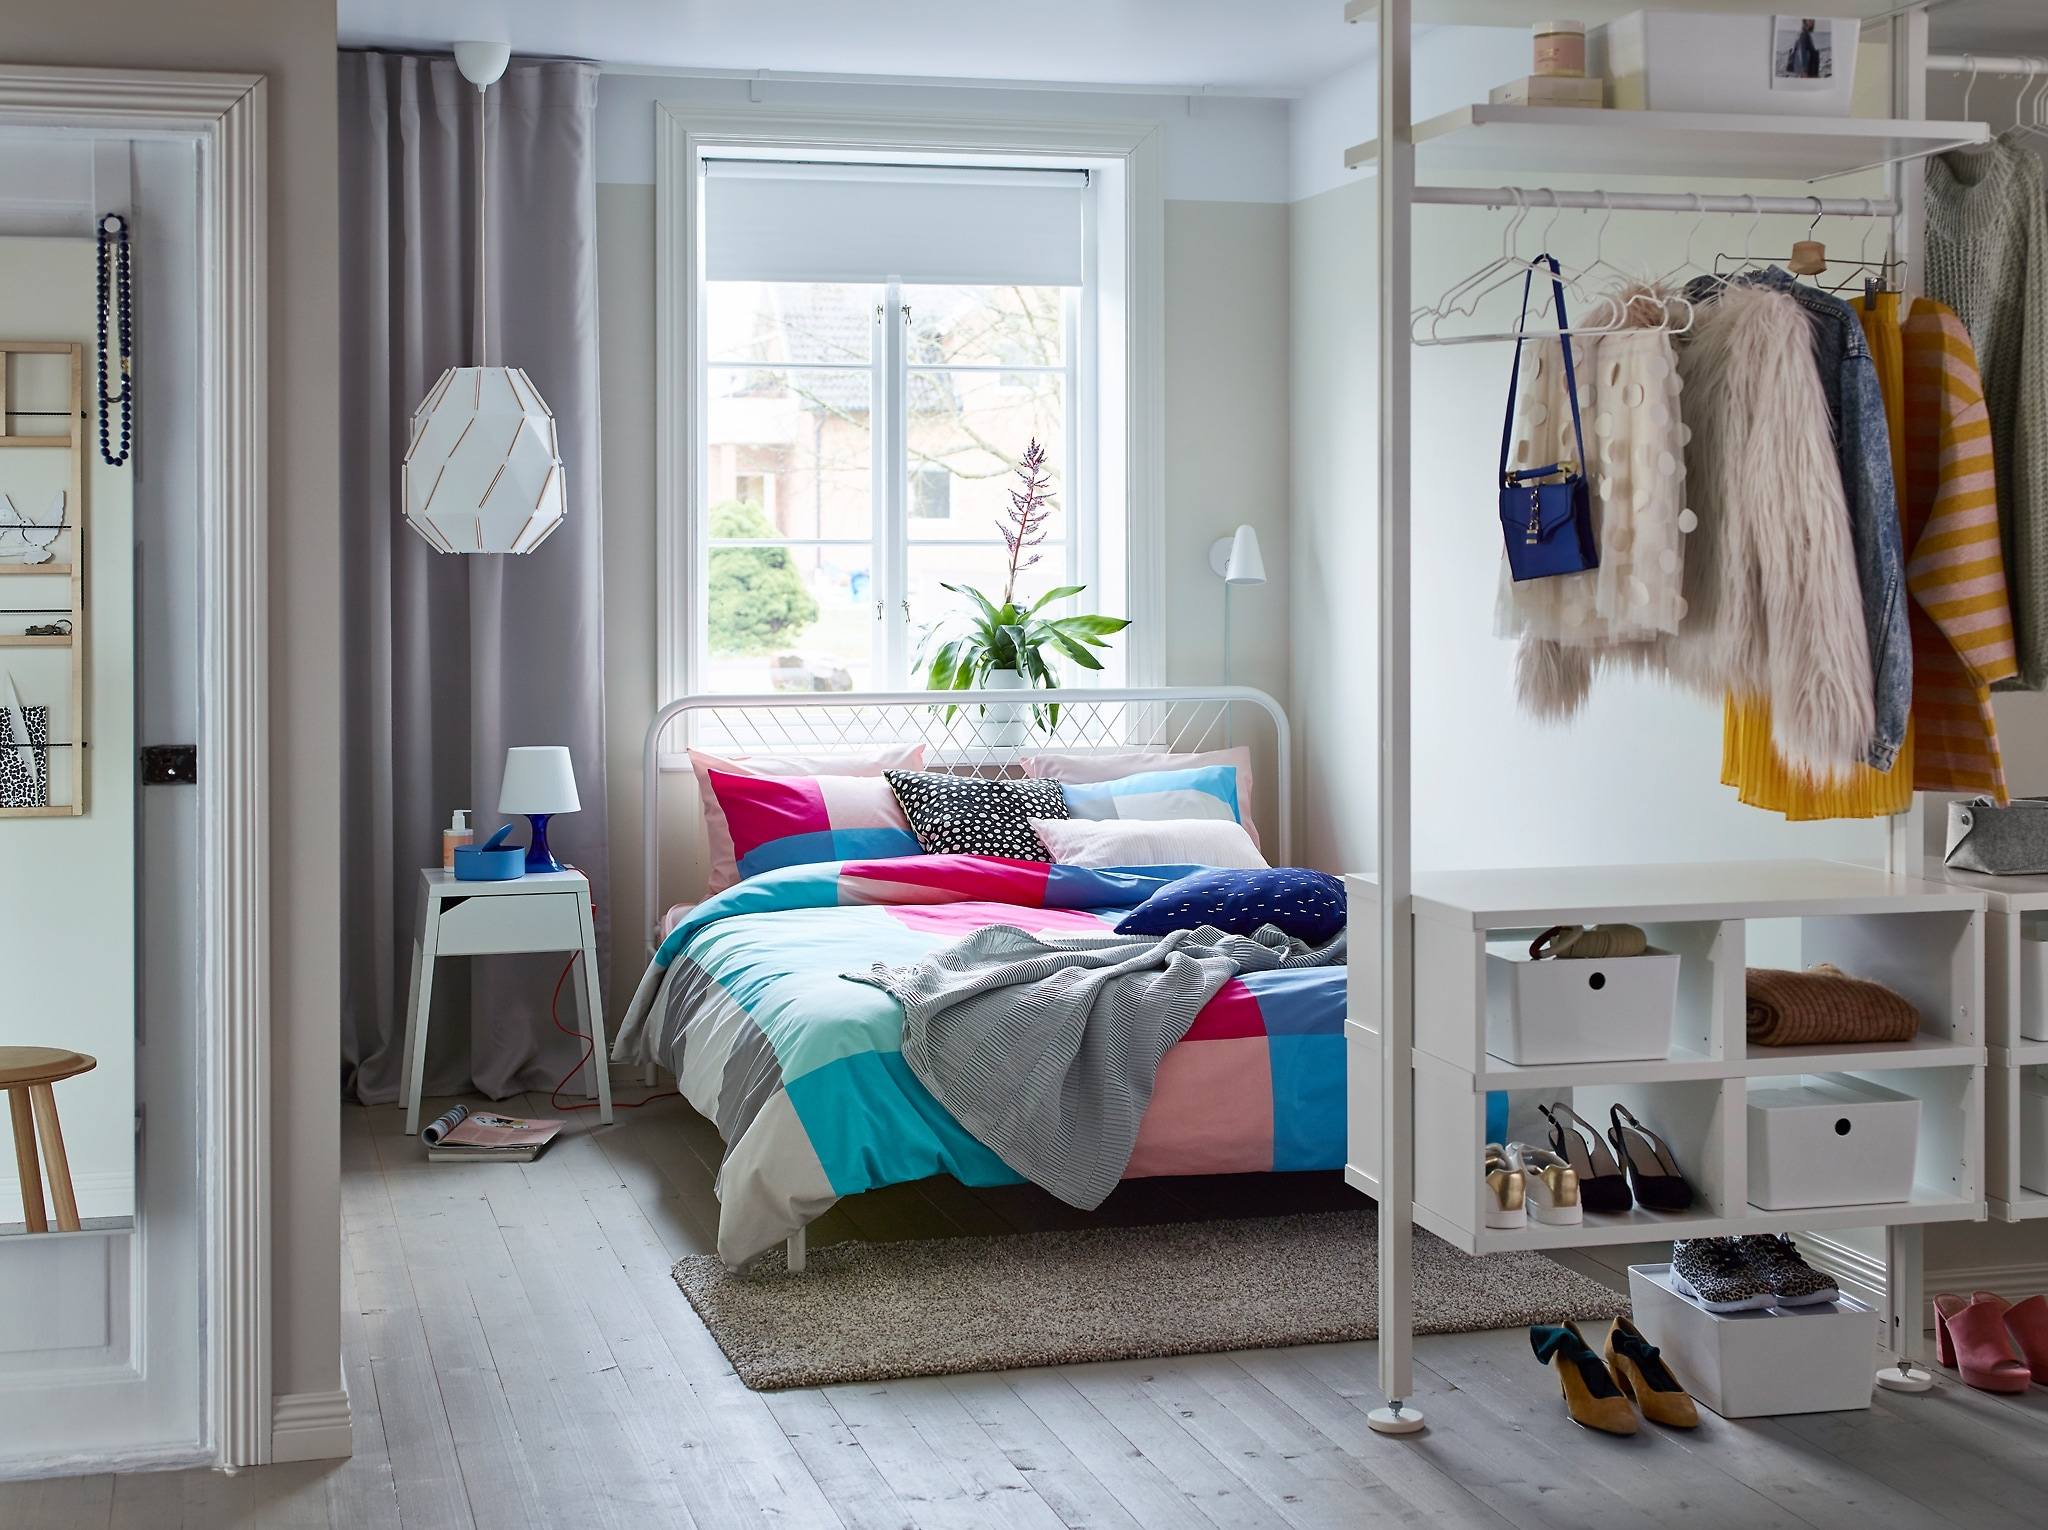 Adding Bedrooms to Your Home